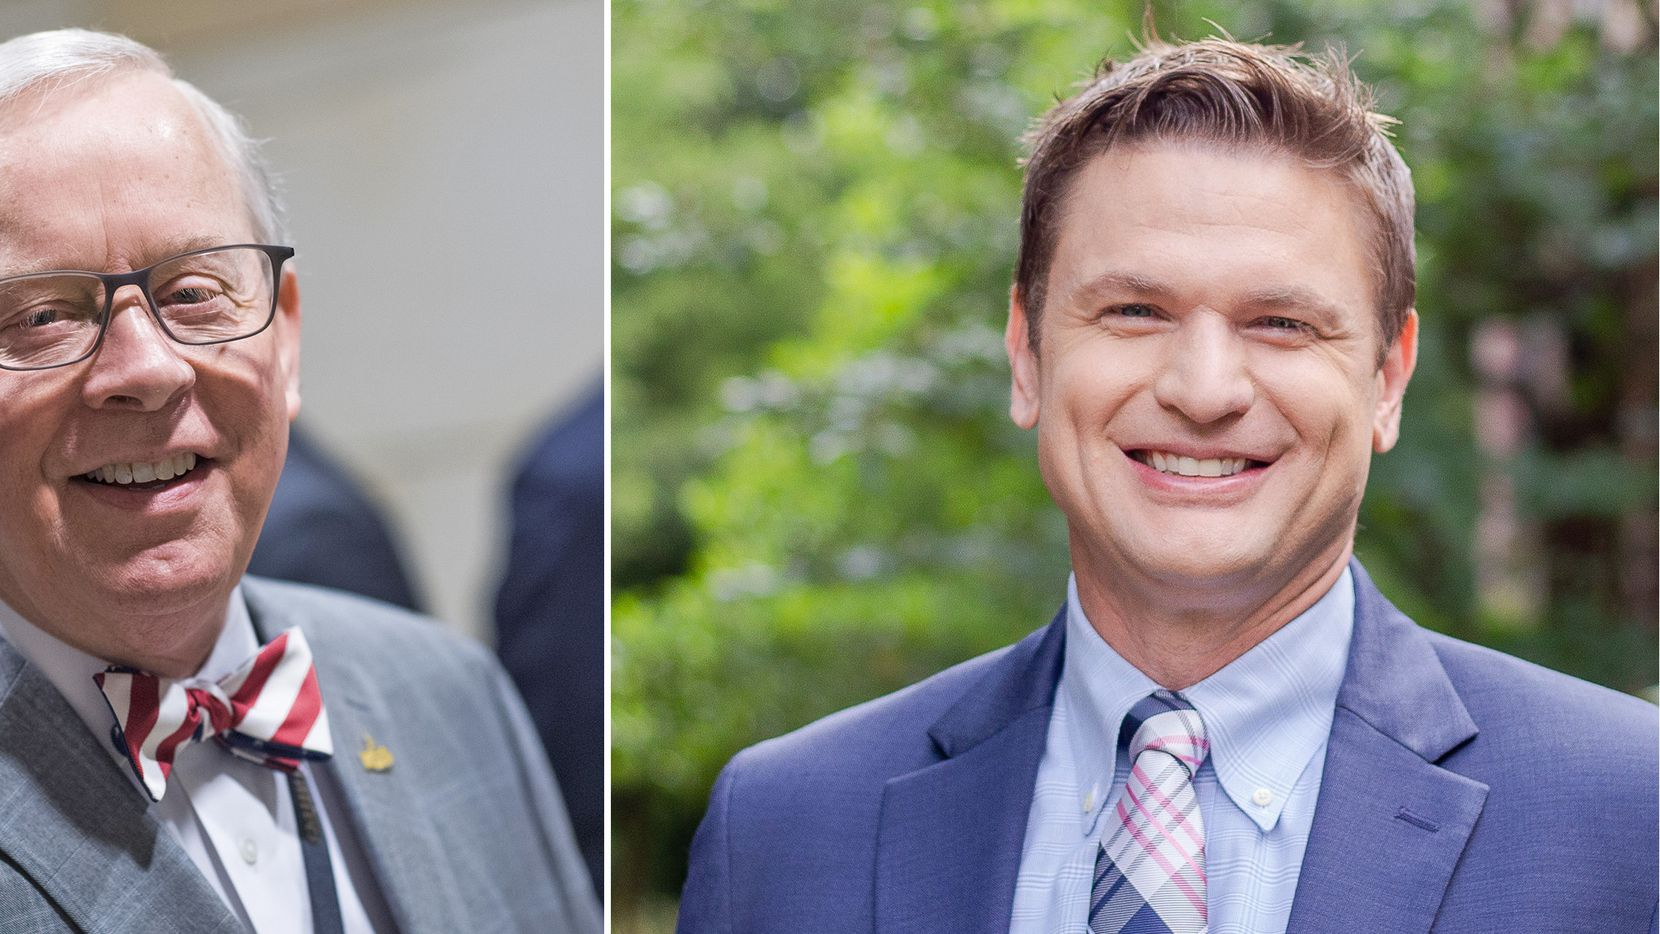 U.S. Rep. Ronald Wright (R-TX) faces Democrat Stephen Daniel in the race to represent Texas' 6th Congressional District.